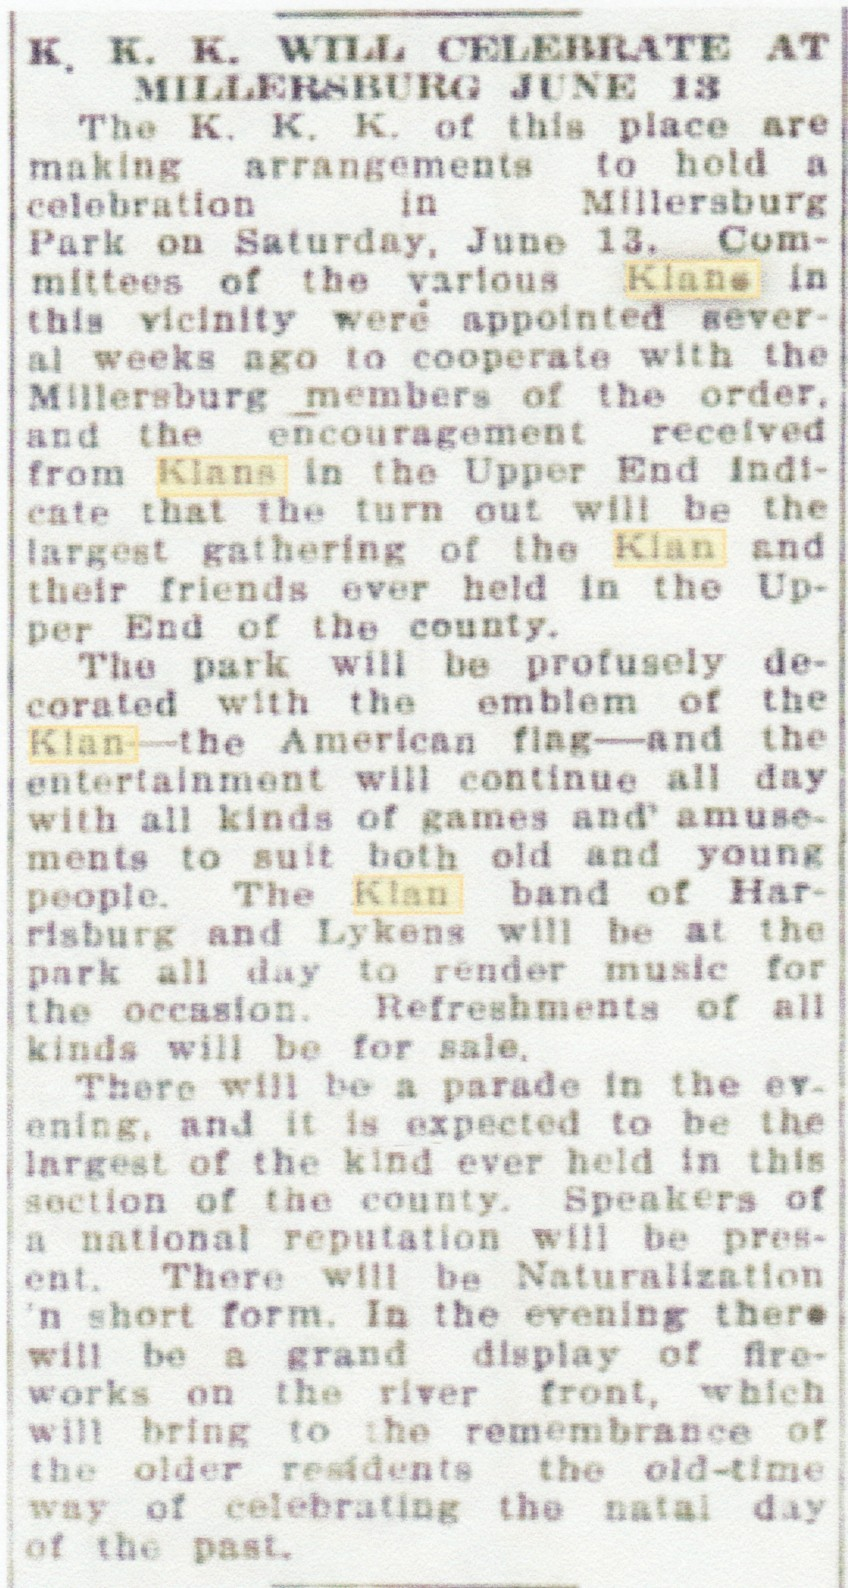 civil war blog massive ku klux klan rally in millersburg  on saturday 13 1925 the ku klux klan planned for a celebration to be held at millersburg s park millersburg dauphin county pennsylvania